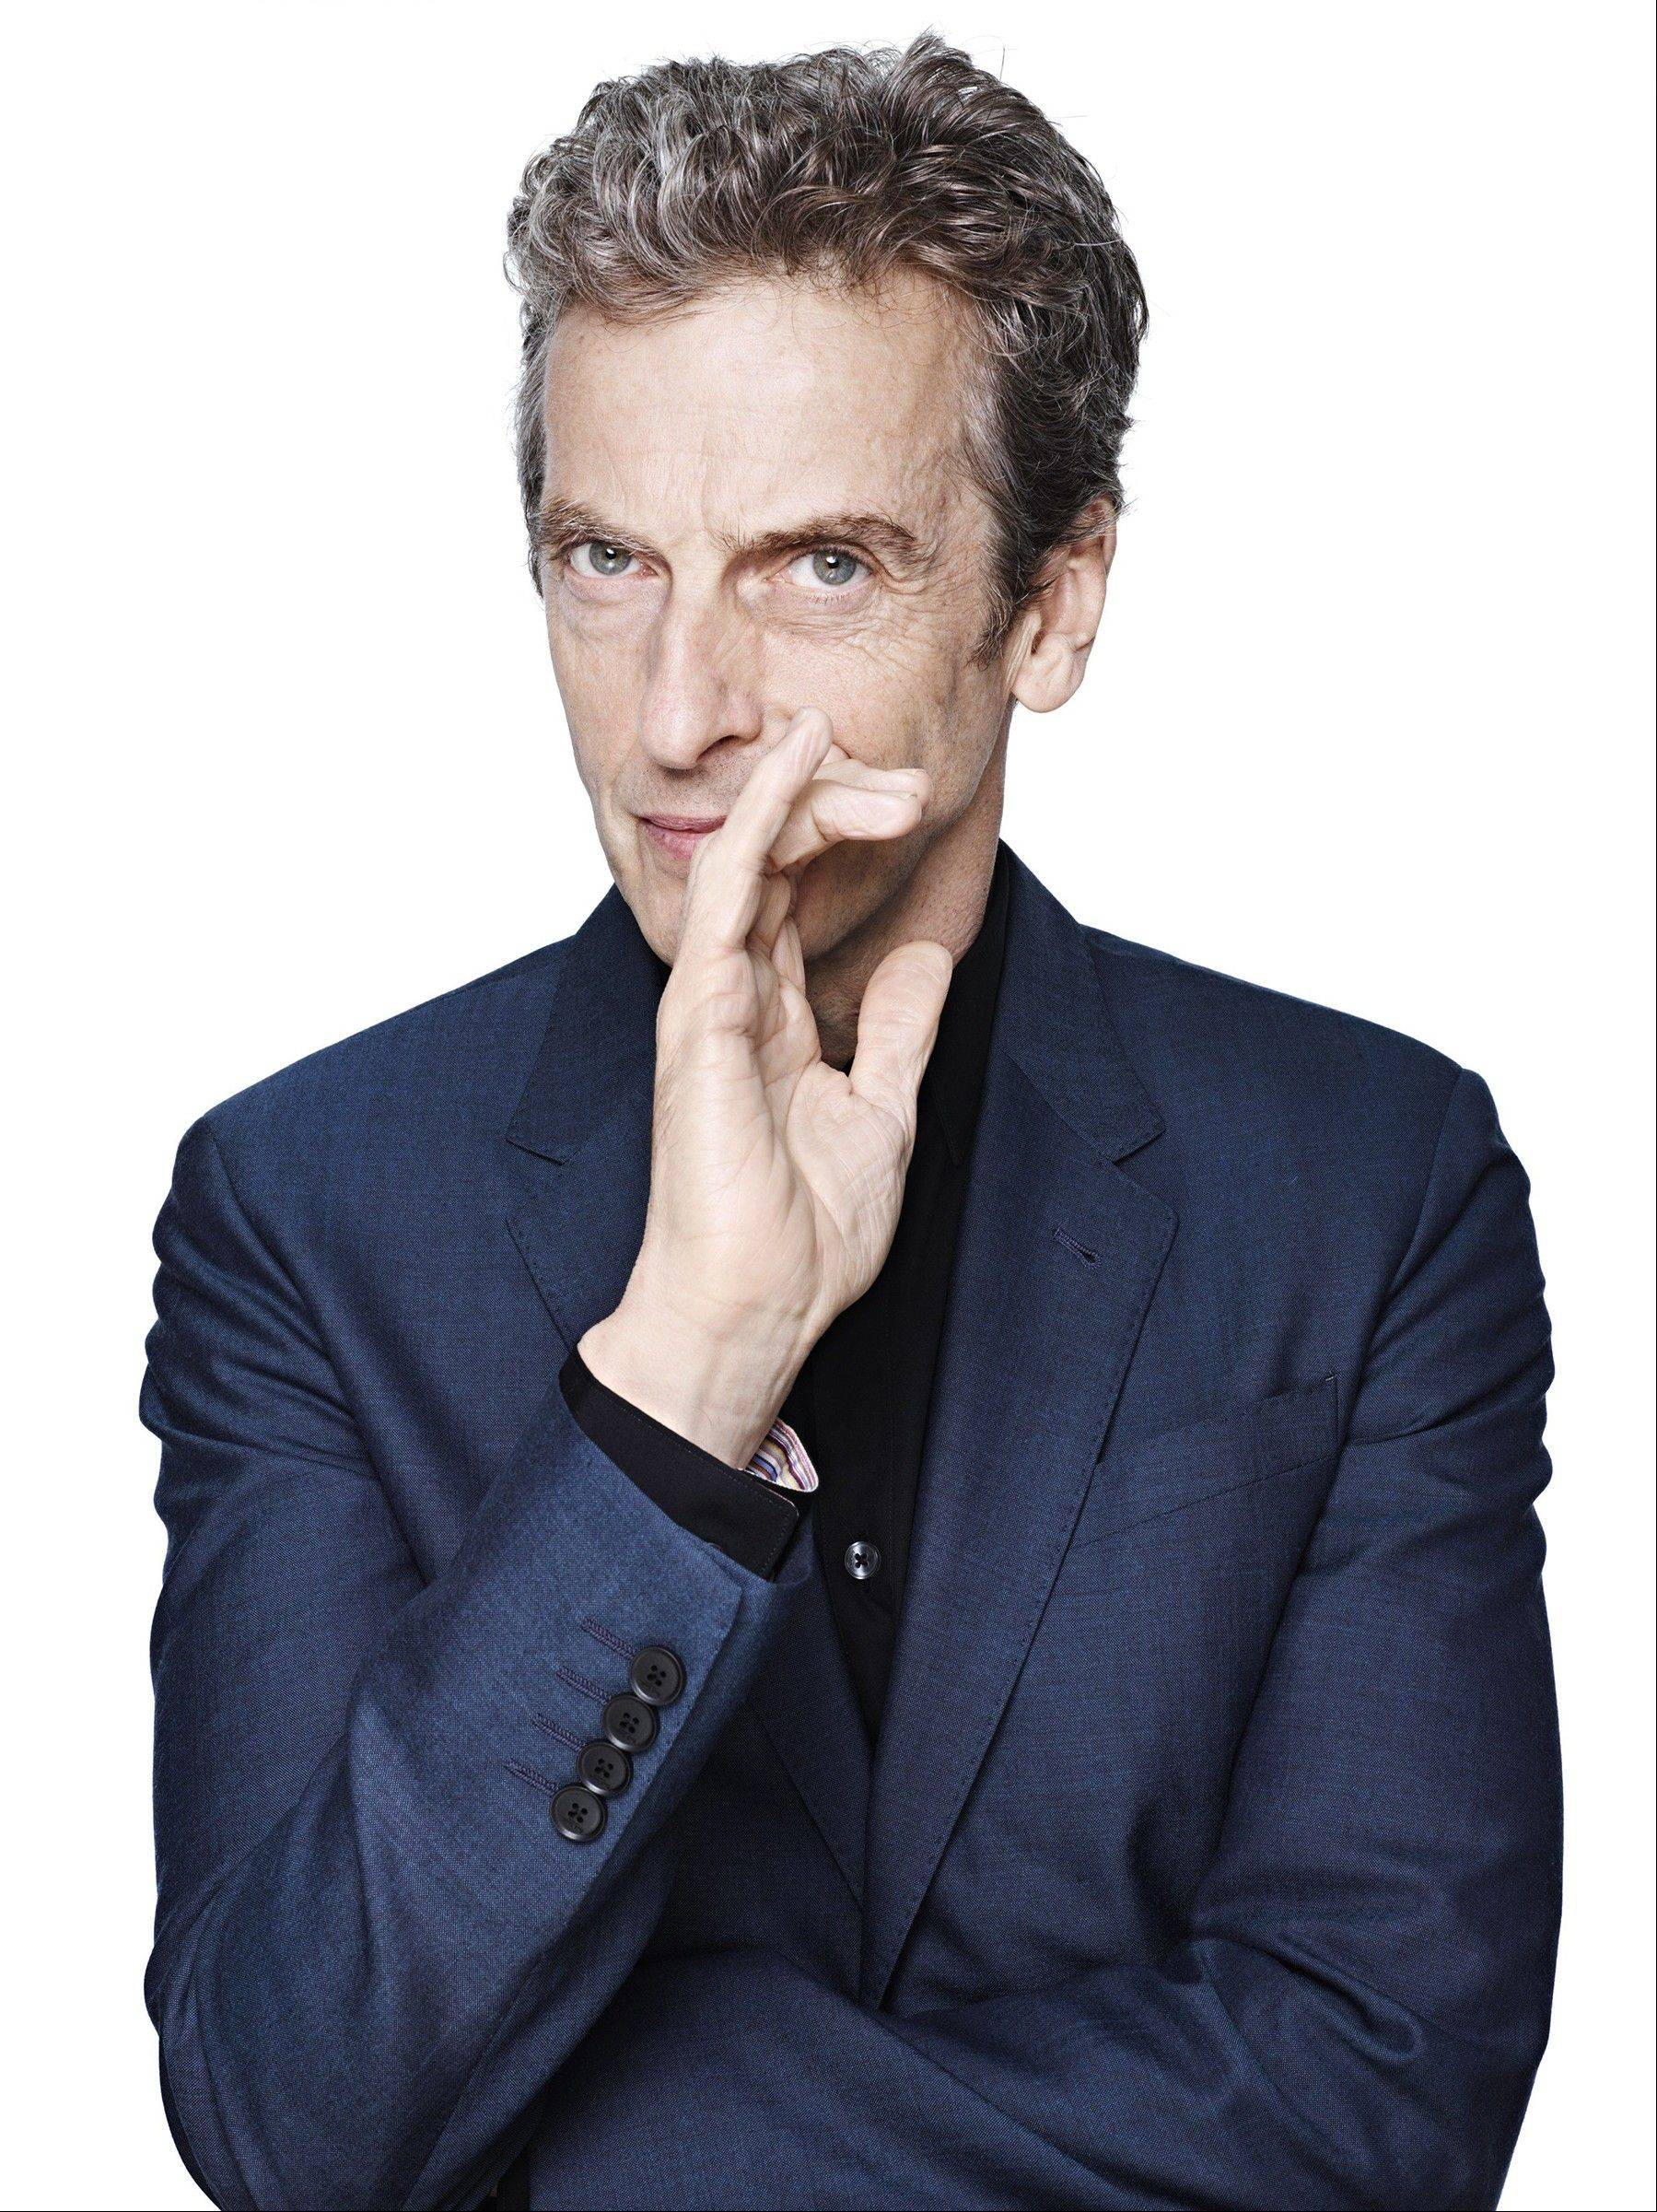 The Doctor Who of the BBC series is an alien given to moodiness, wacky fits and bizarre non sequiturs. The 12th and newest Doctor is Peter Capaldi.